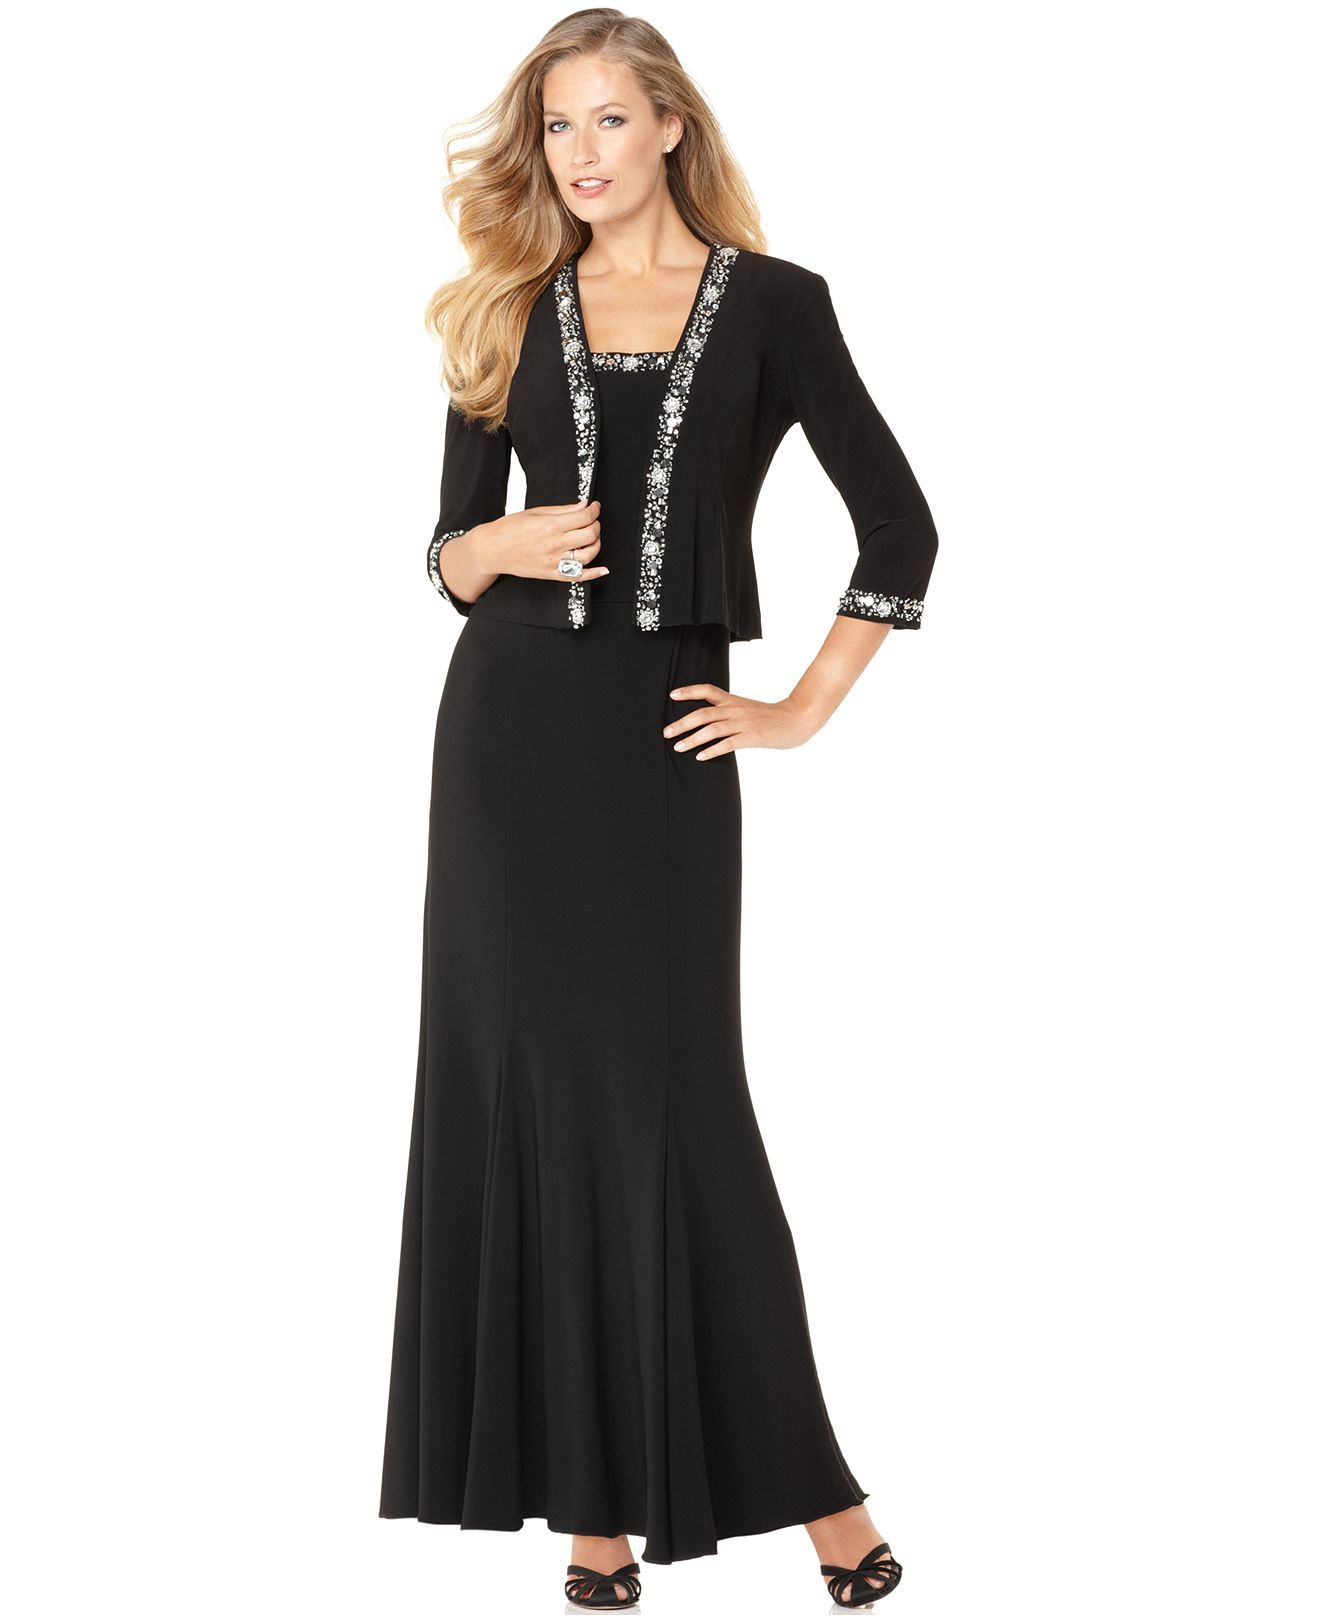 Alex Evenings Dress And Jacket, Sleeveless Beaded Evening